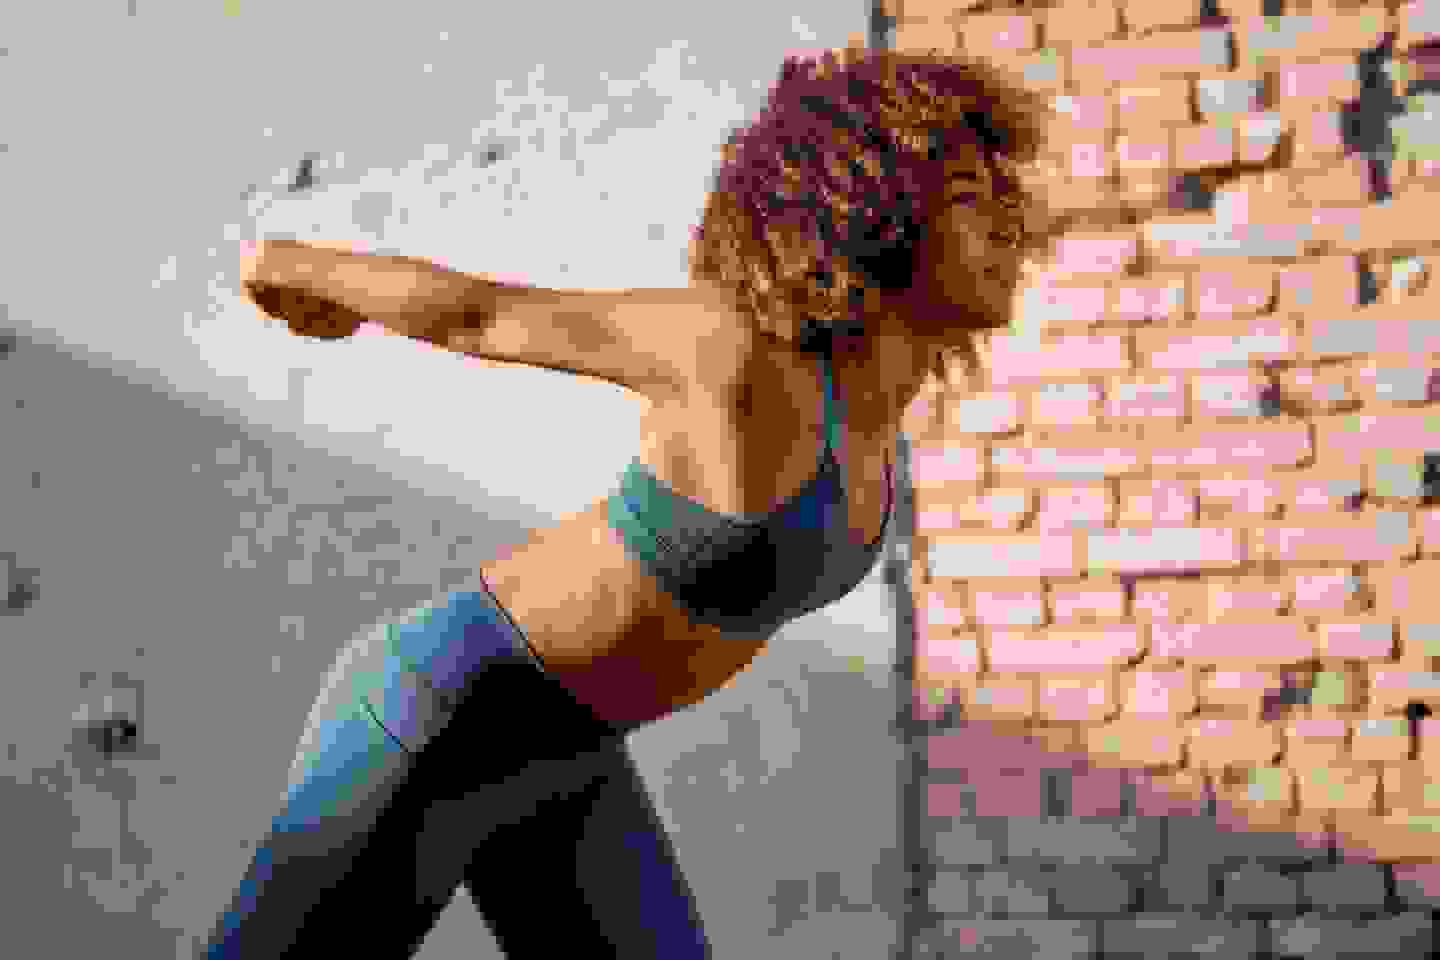 A close-up of a woman wearing an adidas bra and arching her back in front of a concrete wall.